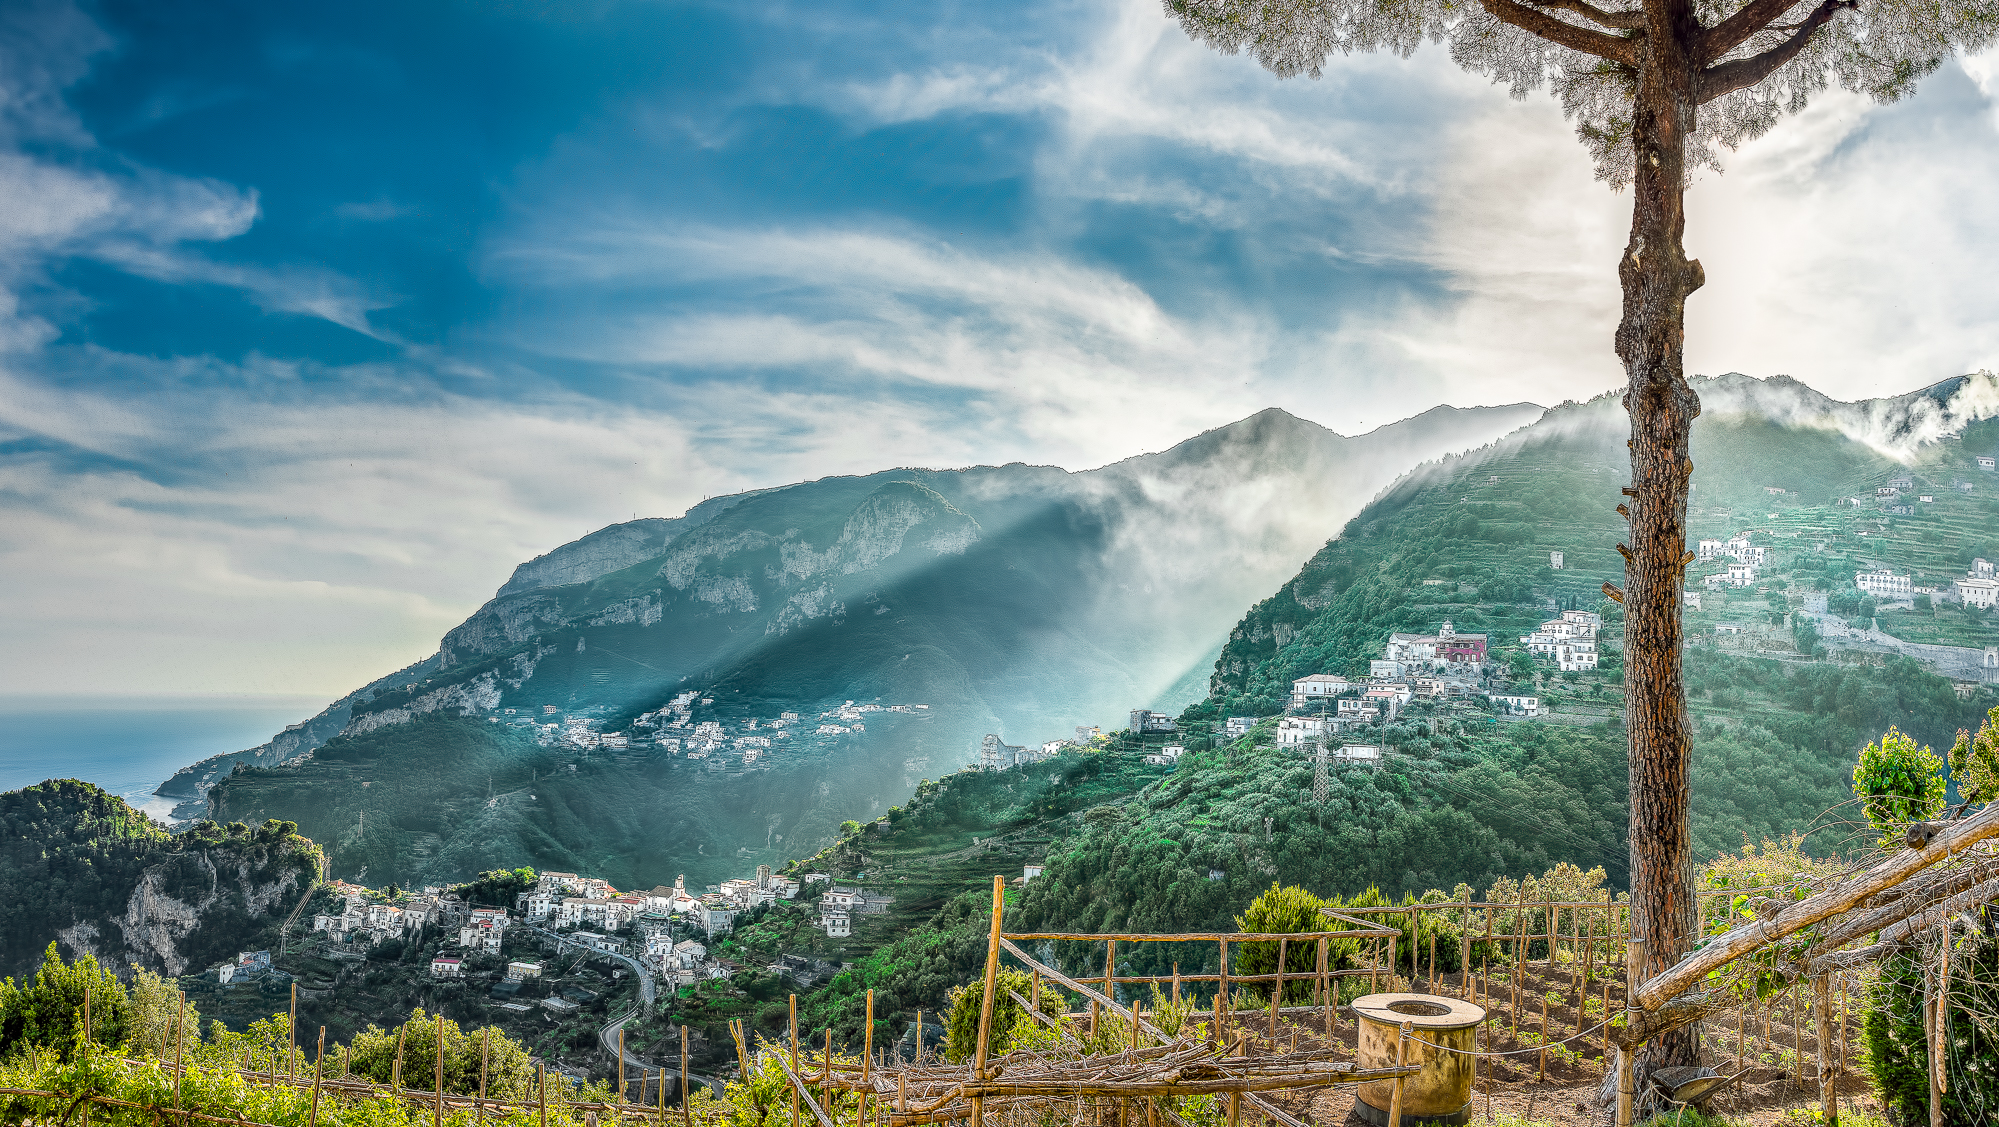 Looking to the west from Ravello, where the town of Amalfi sits at the terminus of the distant valley